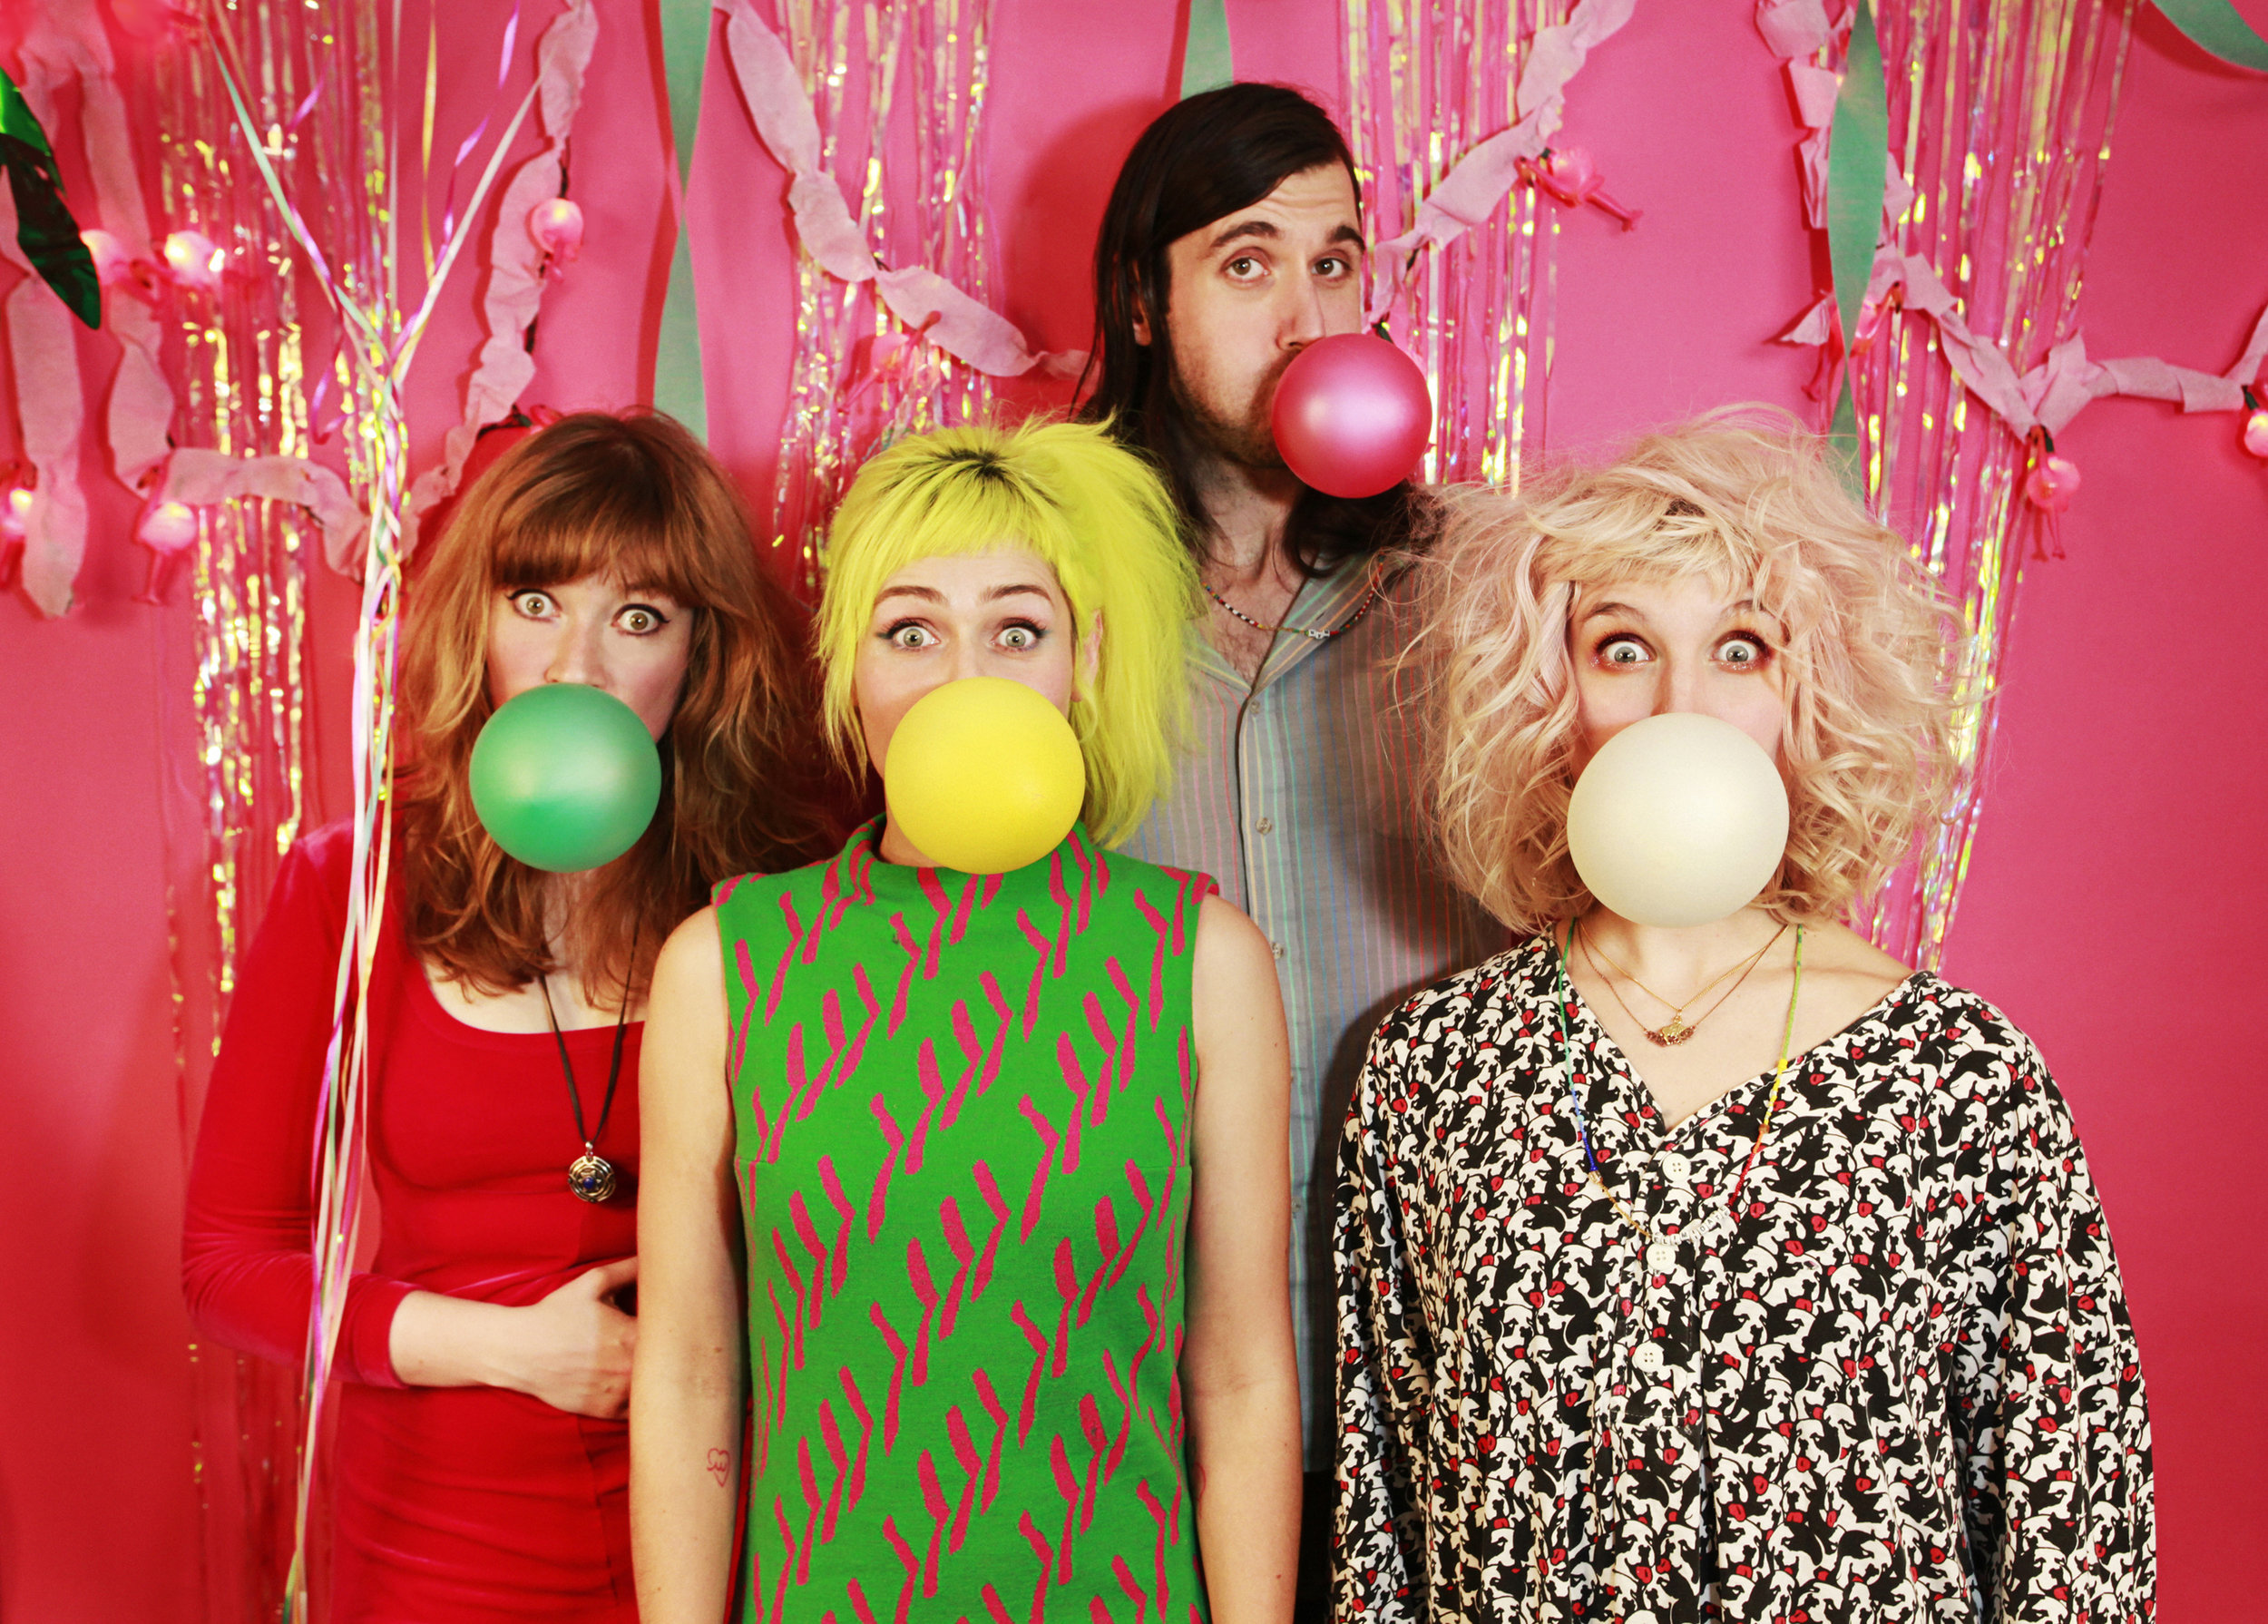 Tacocat Promo For Hardly Art Records / Sub Pop